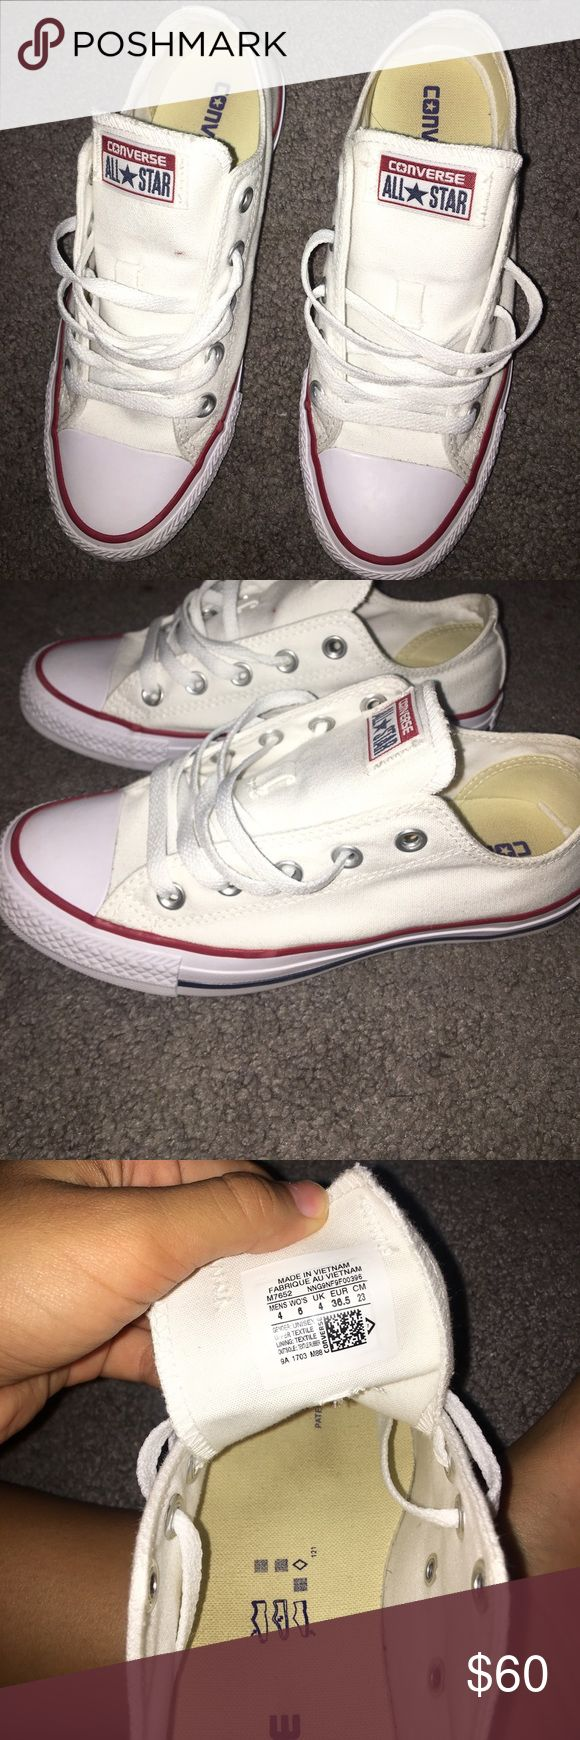 White Converse Woman's size 6. Great condition. Worn once. Don't fit me. Converse Shoes Sneakers